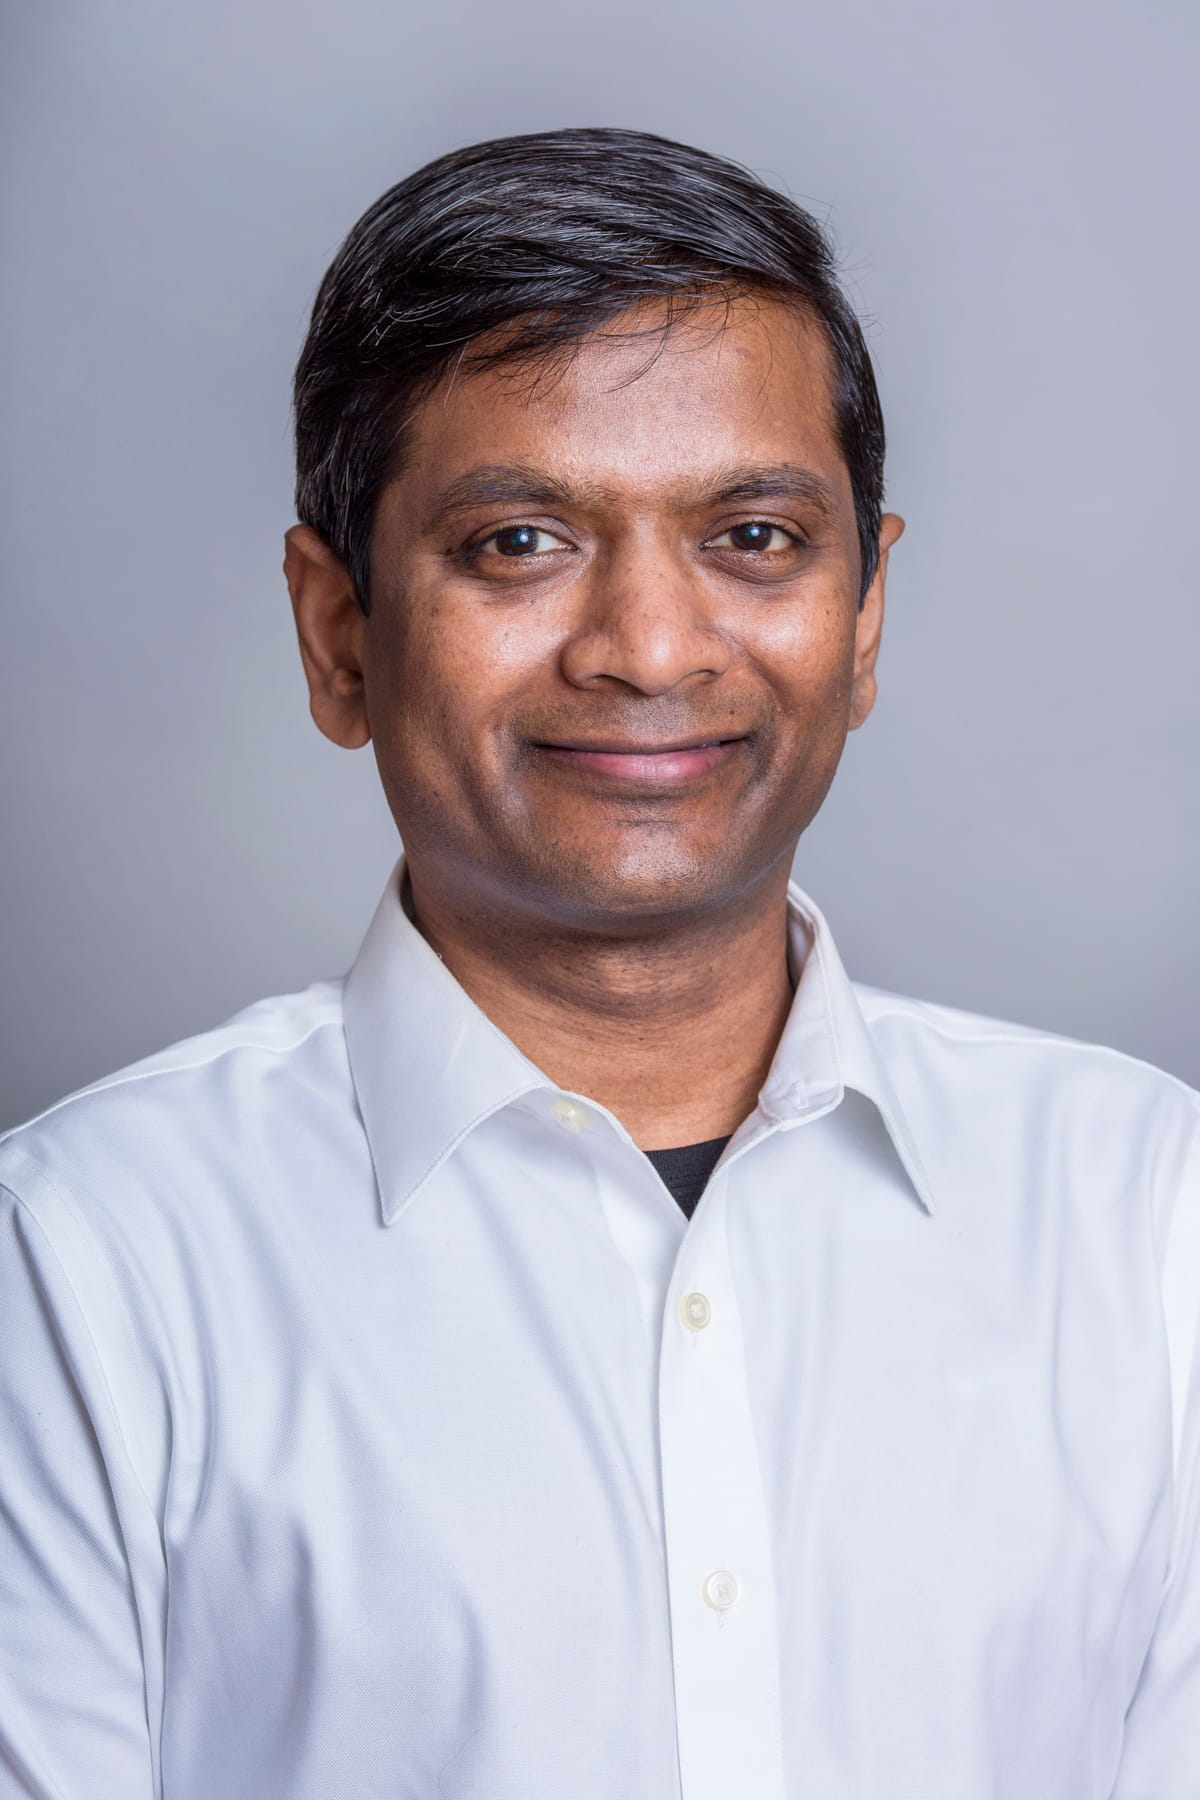 A photo of Nagendra Monangi.